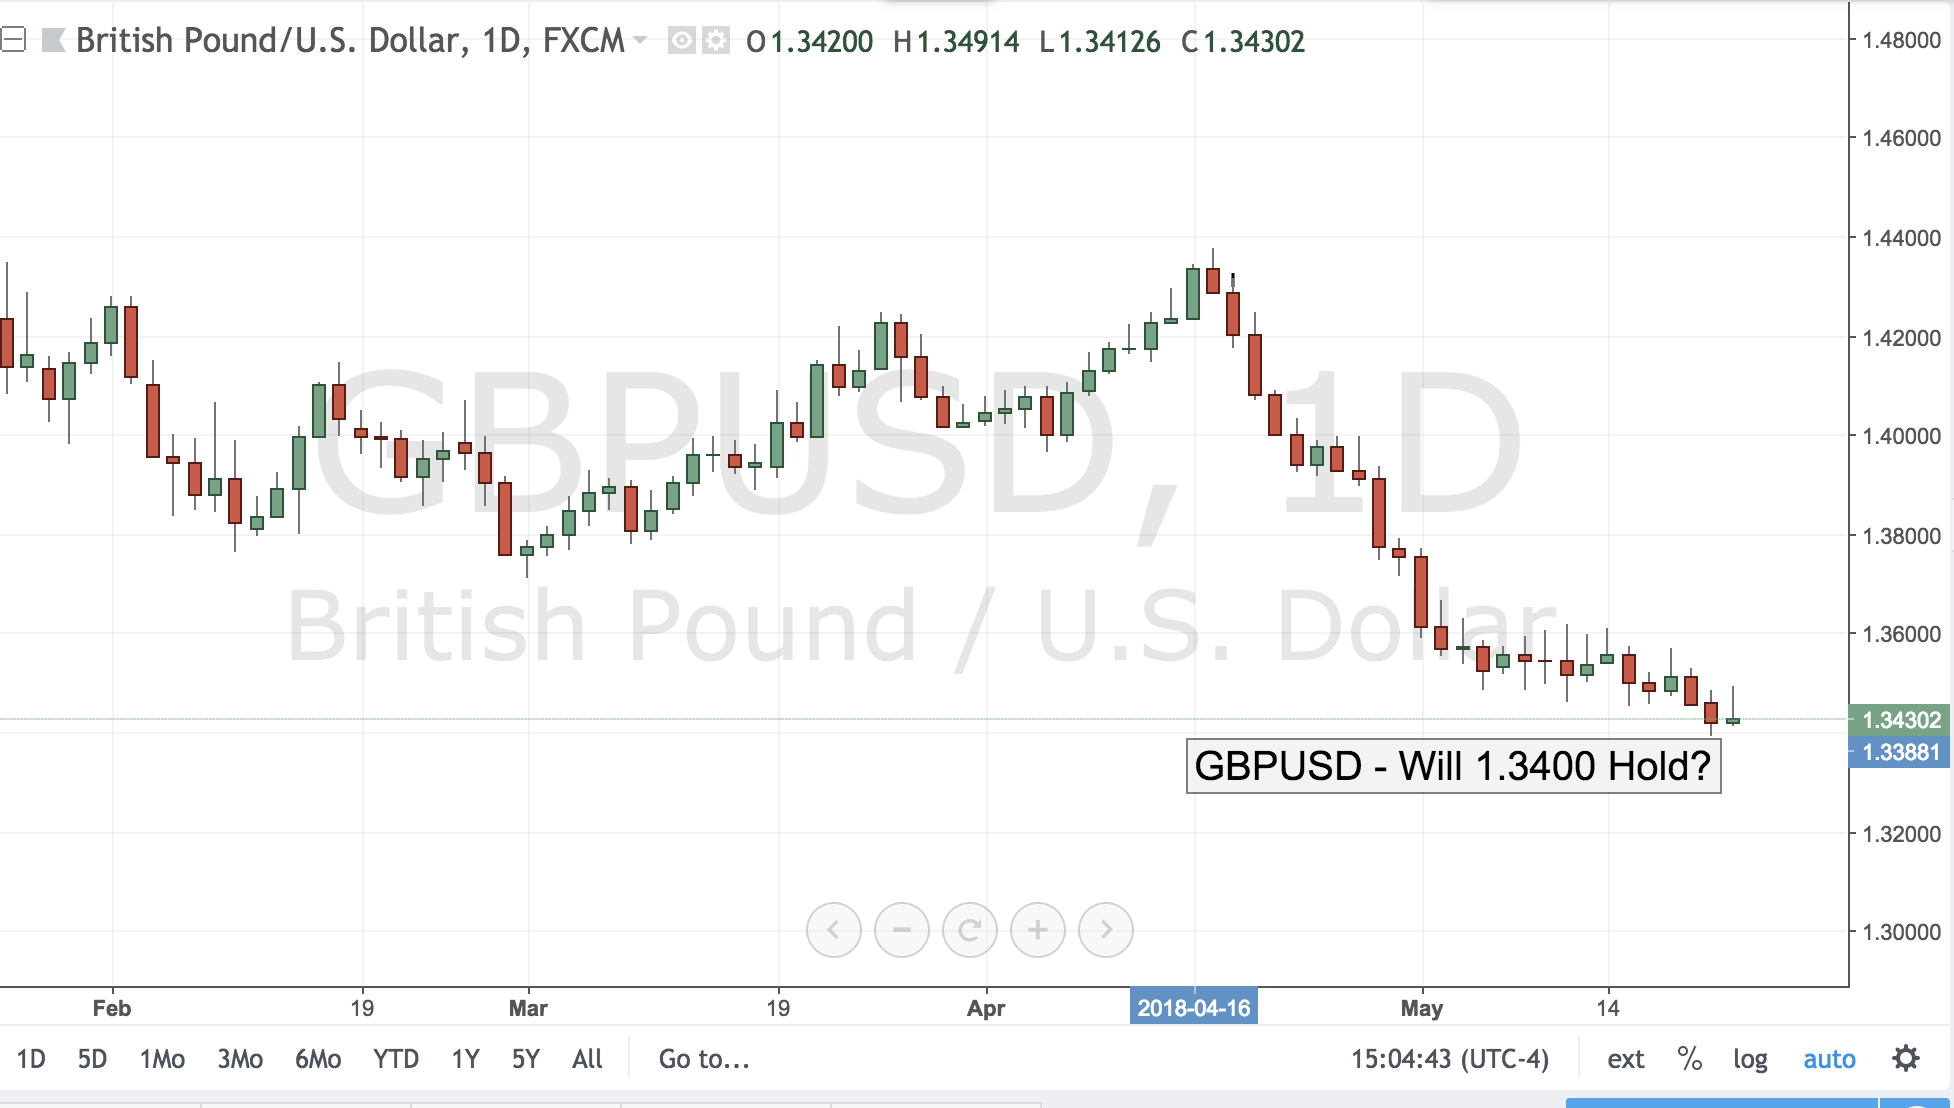 GBPUSD – Will 1.3400 Hold?